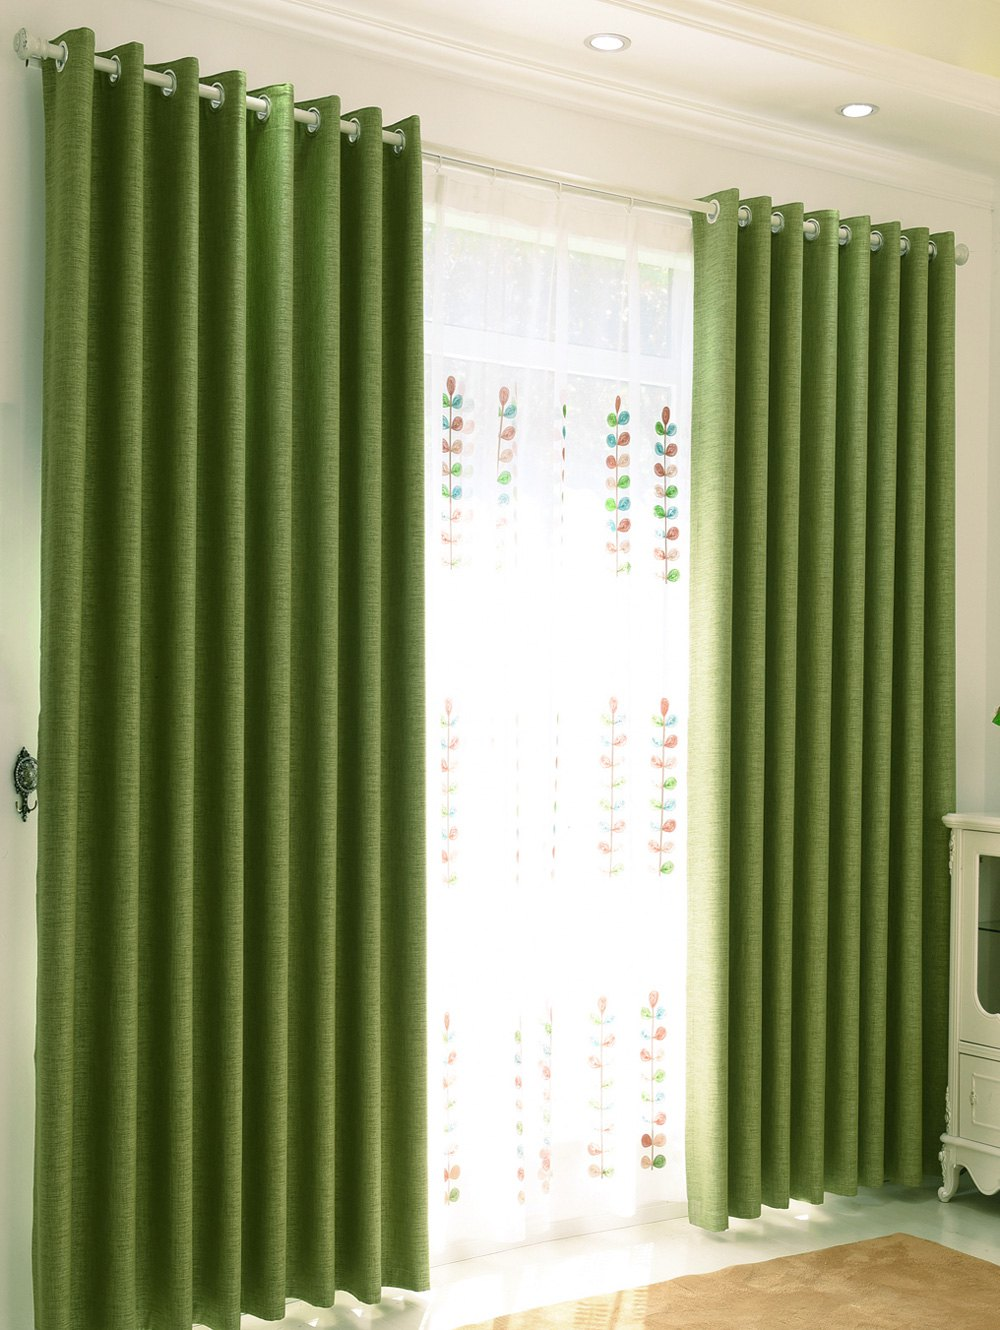 Home Decor Shading Blackout Perforated Window Curtain - Vert 100*270CM